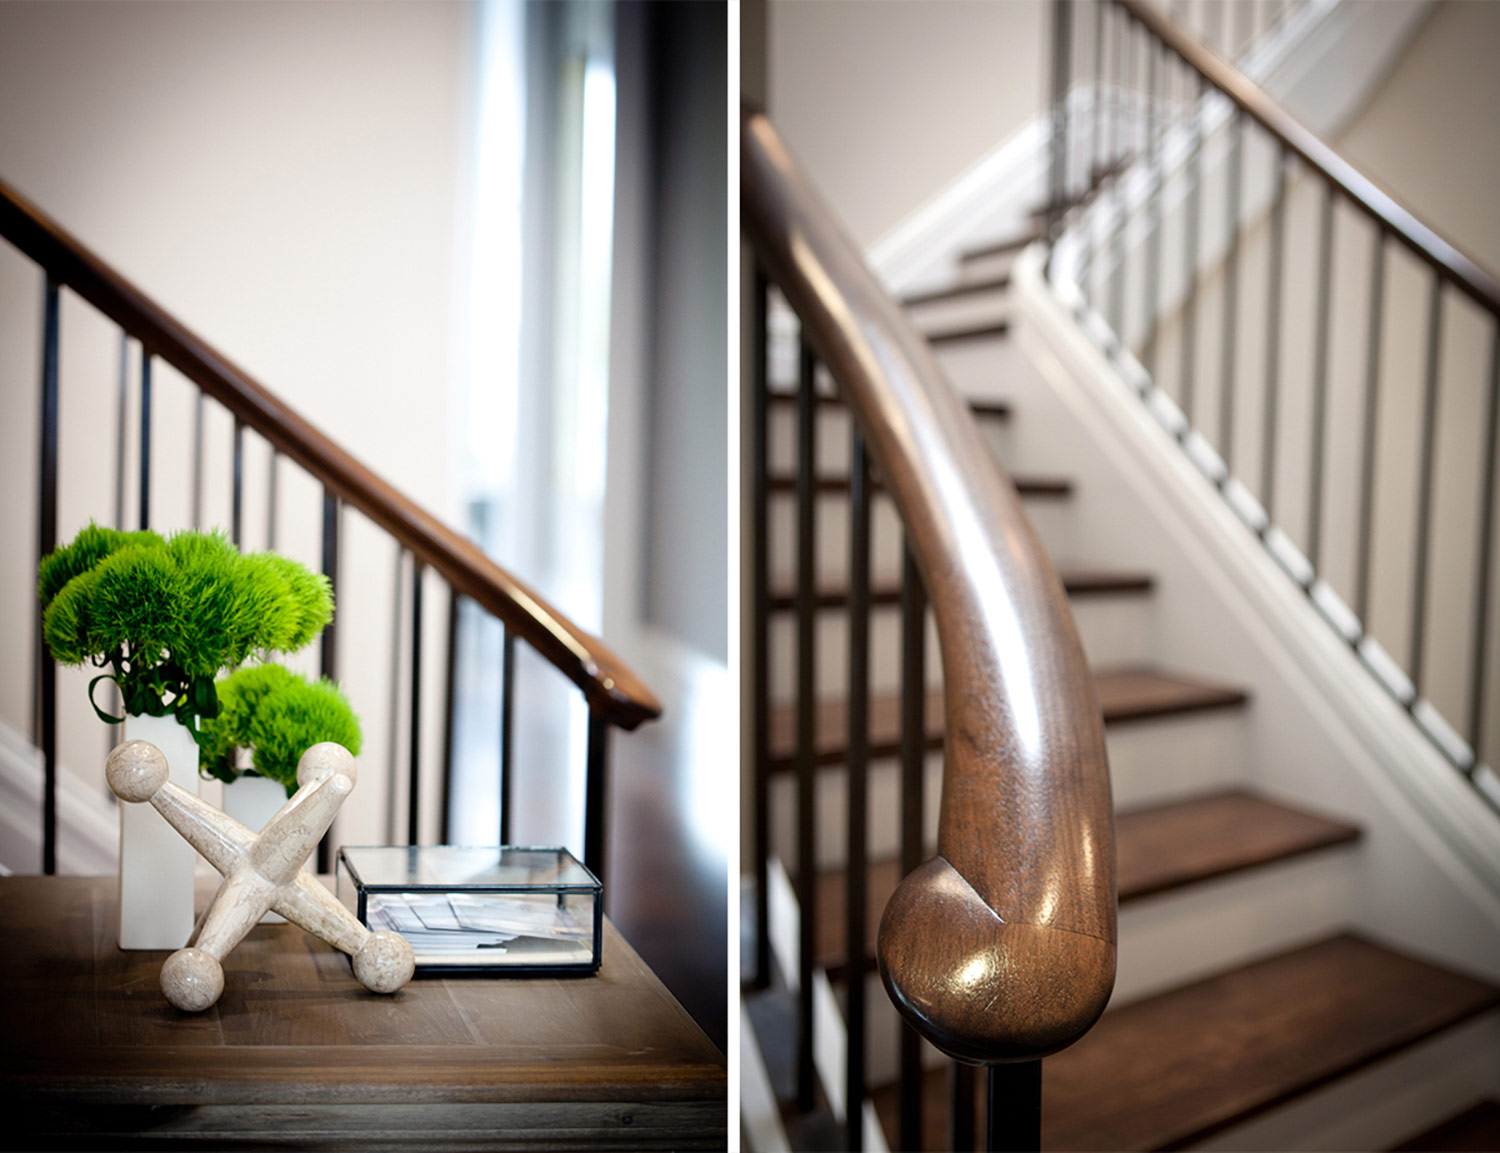 staircase, spiral staircase, accessories, stair railing, hardwood floors